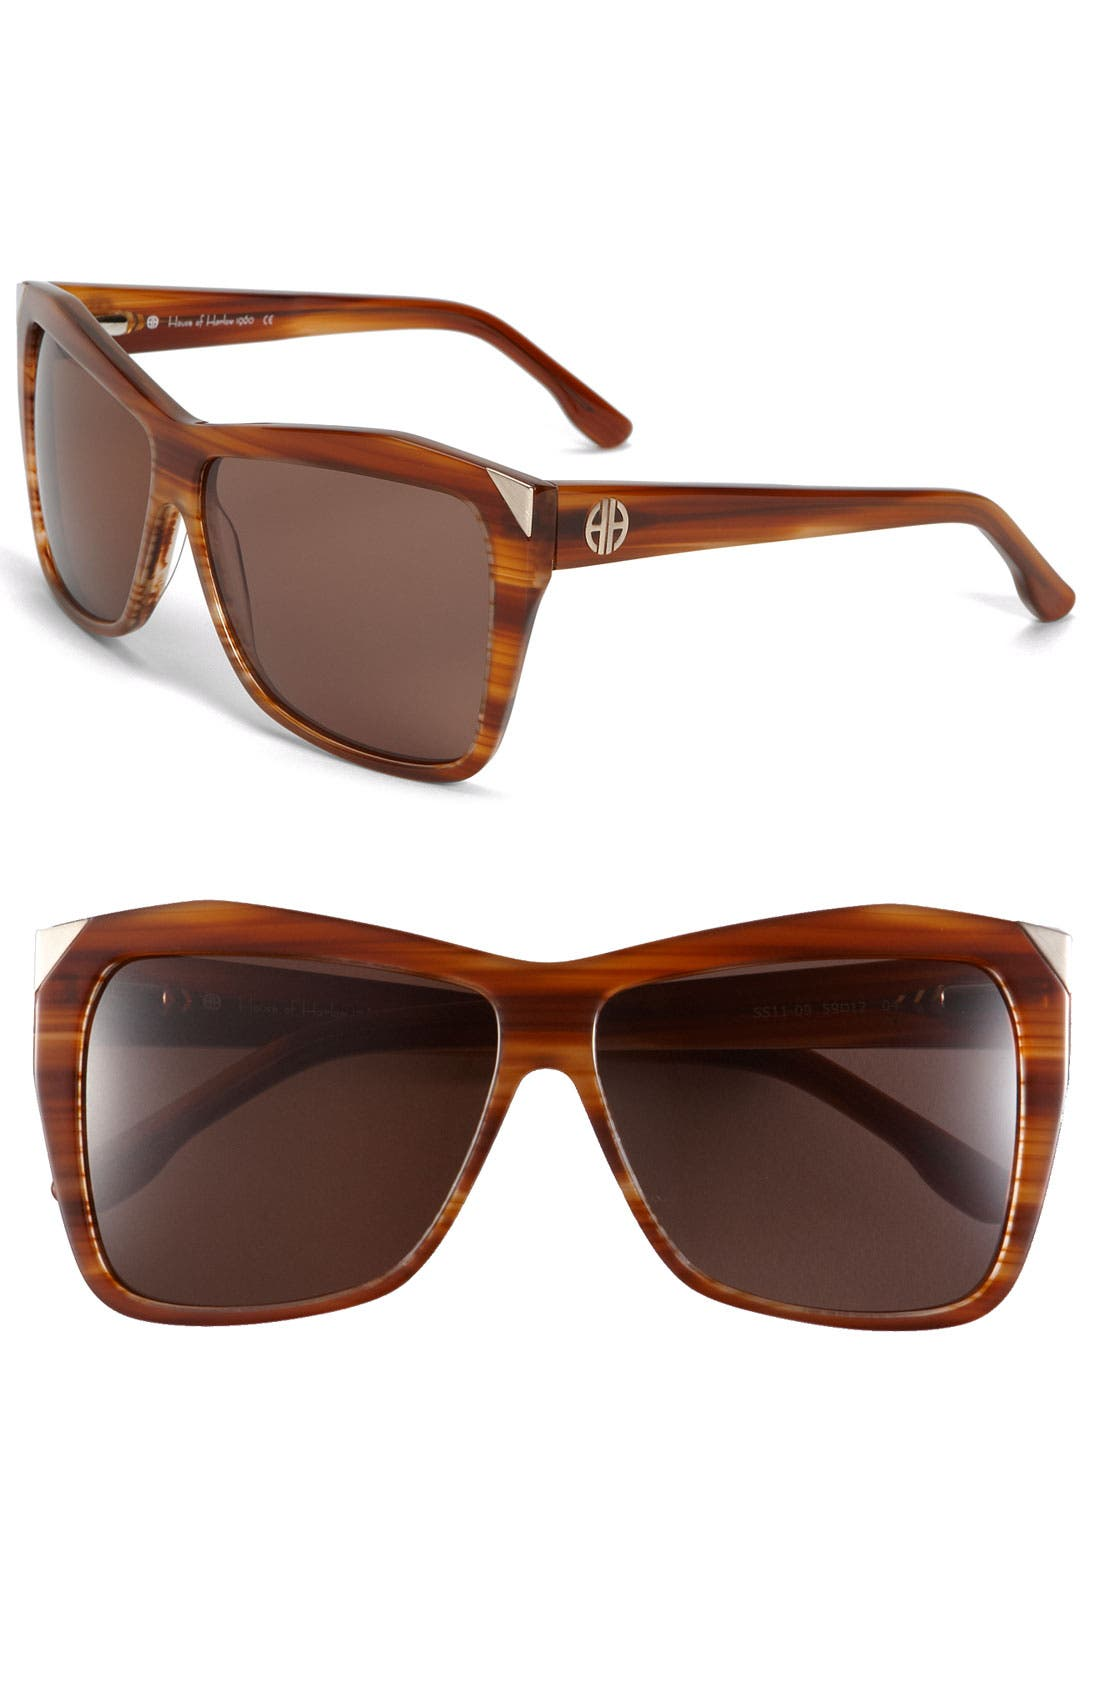 Main Image - House of Harlow 1960 'Marie' Sunglasses